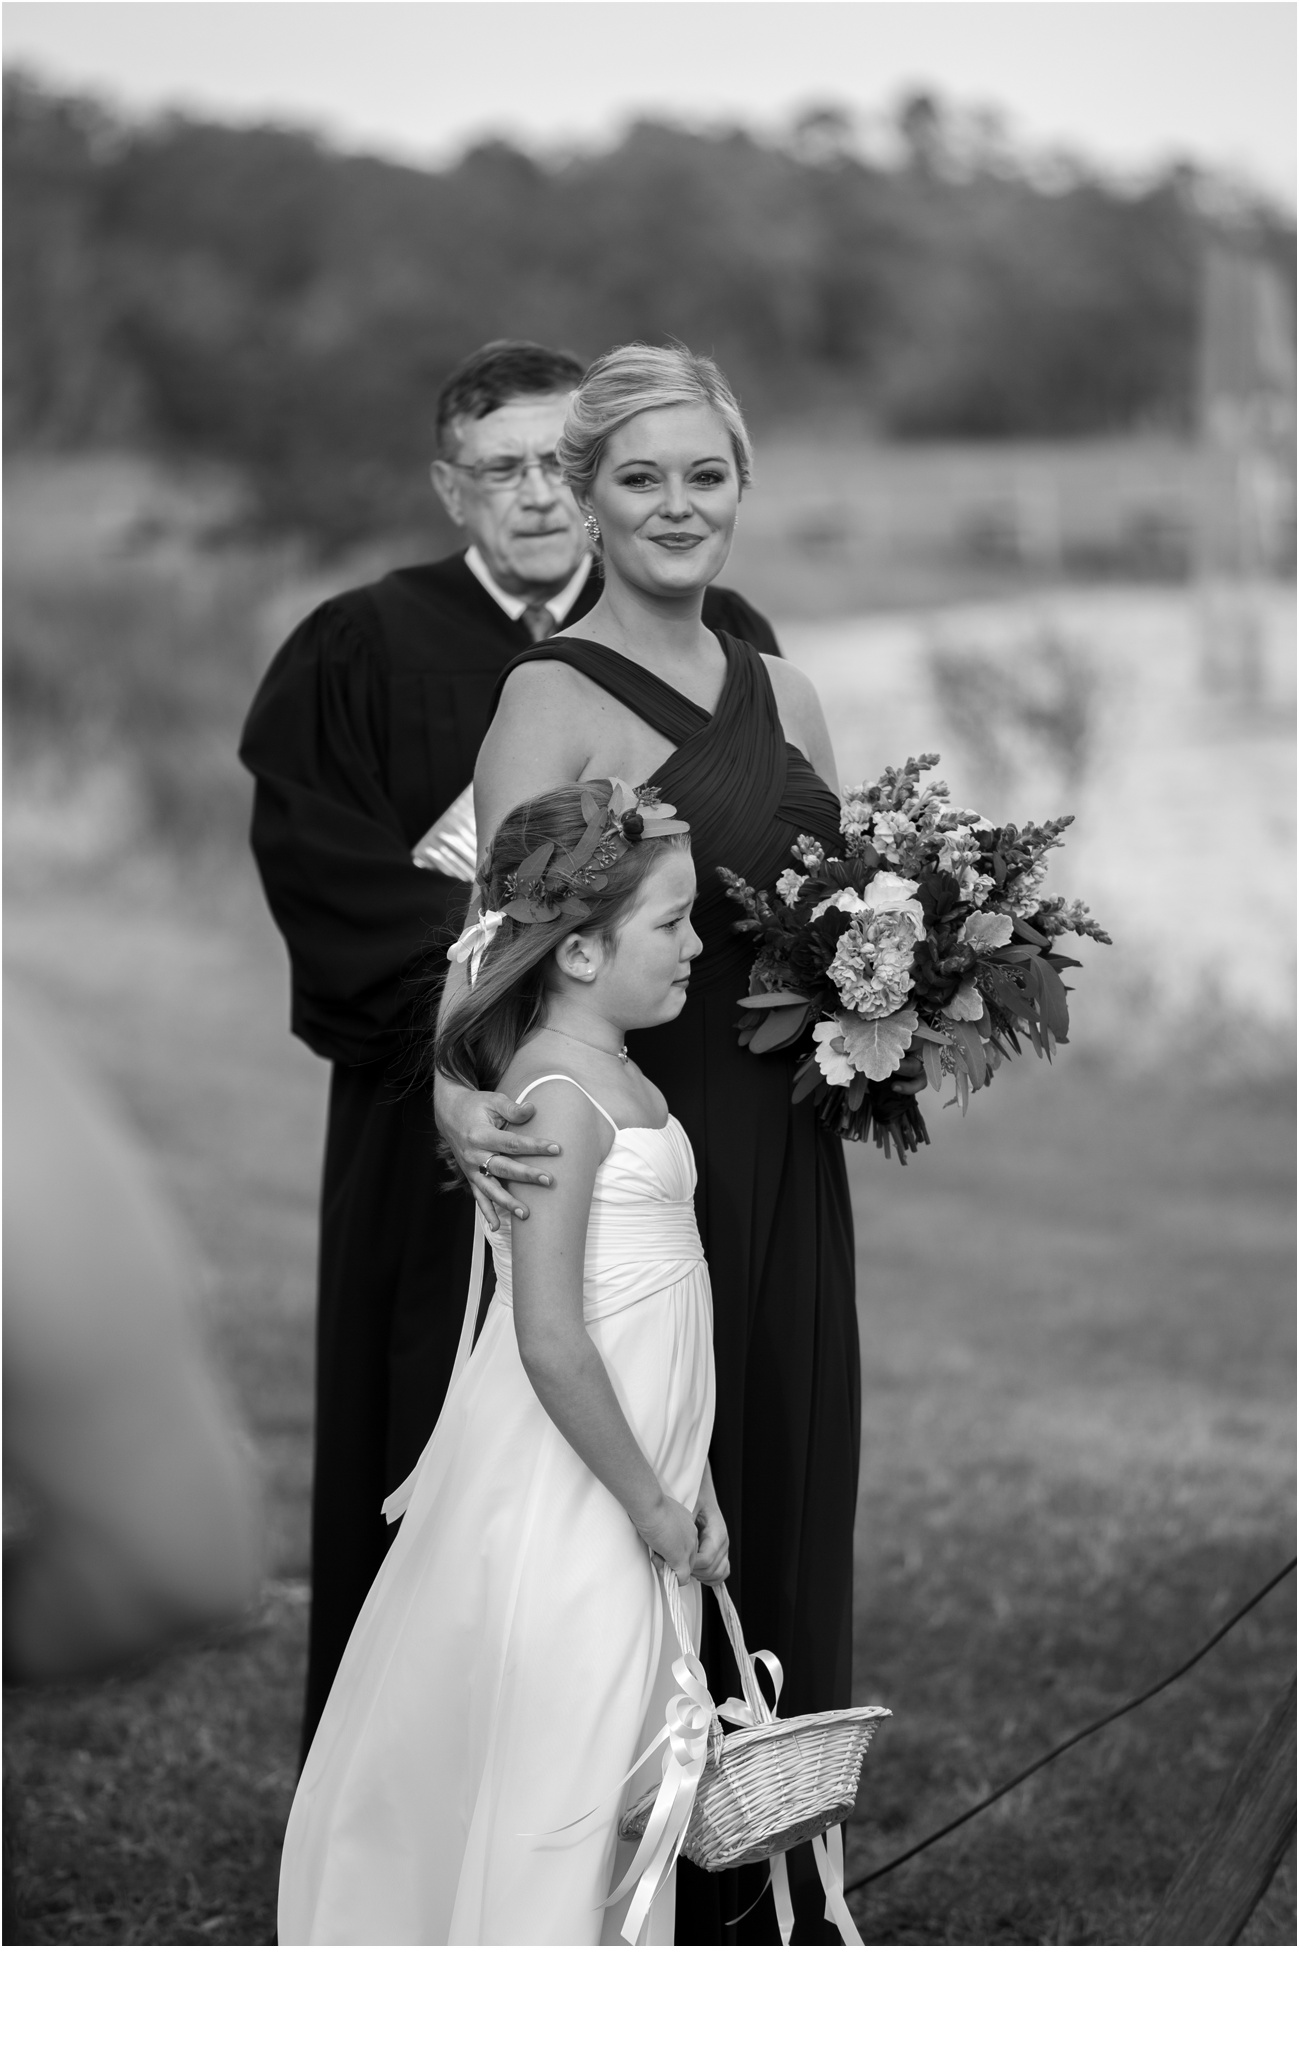 Rainey_Gregg_Photography_St._Simons_Island_Georgia_California_Wedding_Portrait_Photography_0815.jpg